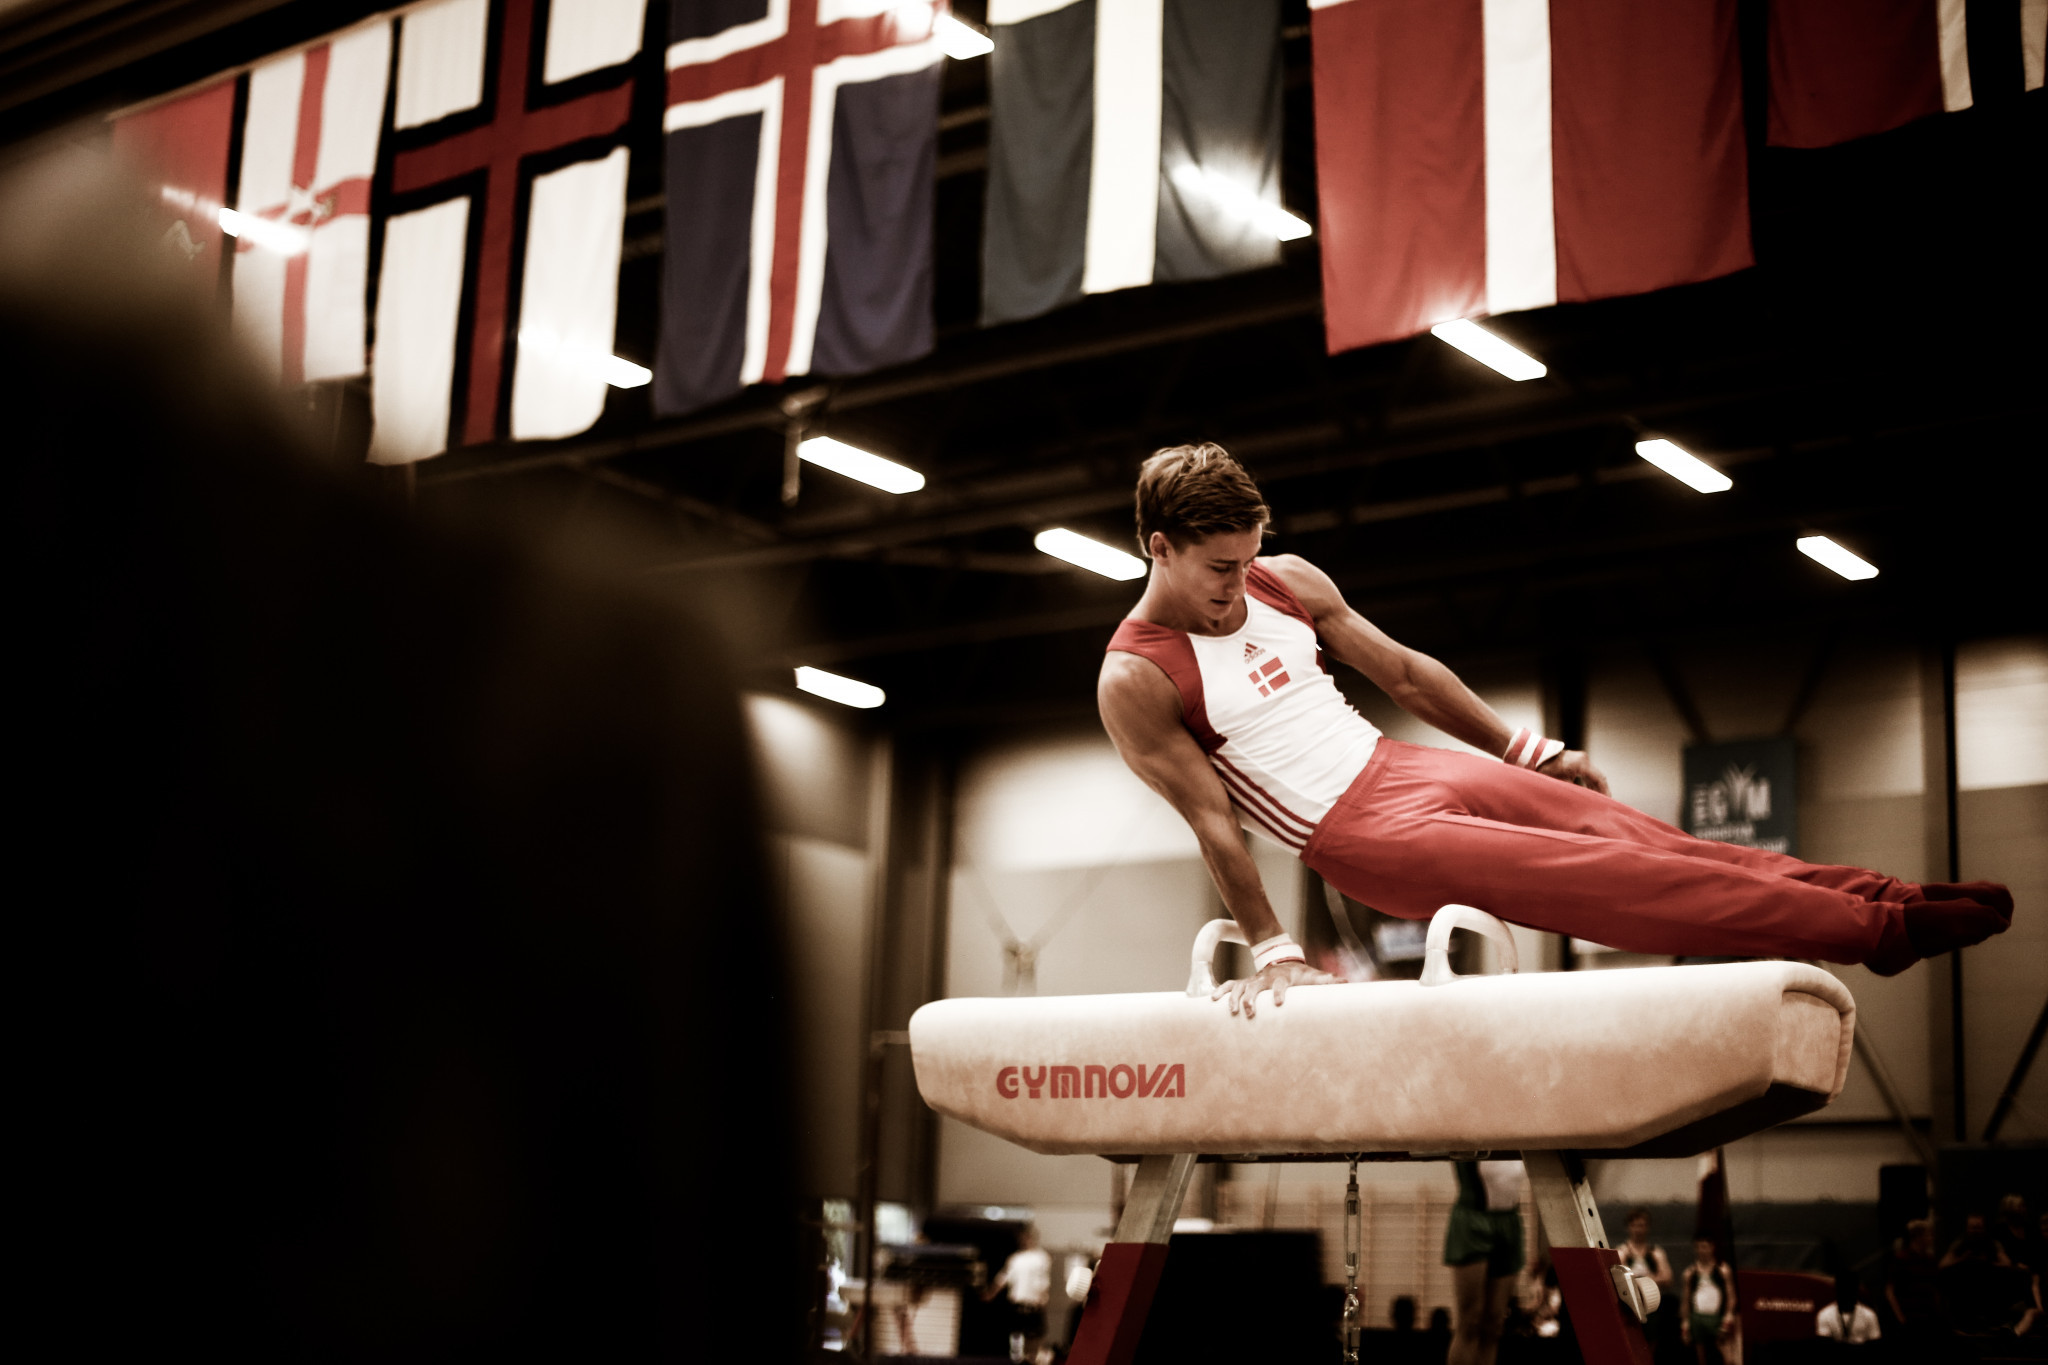 The news is a huge boost for Danish gymnastics ©Sport Event Denmark